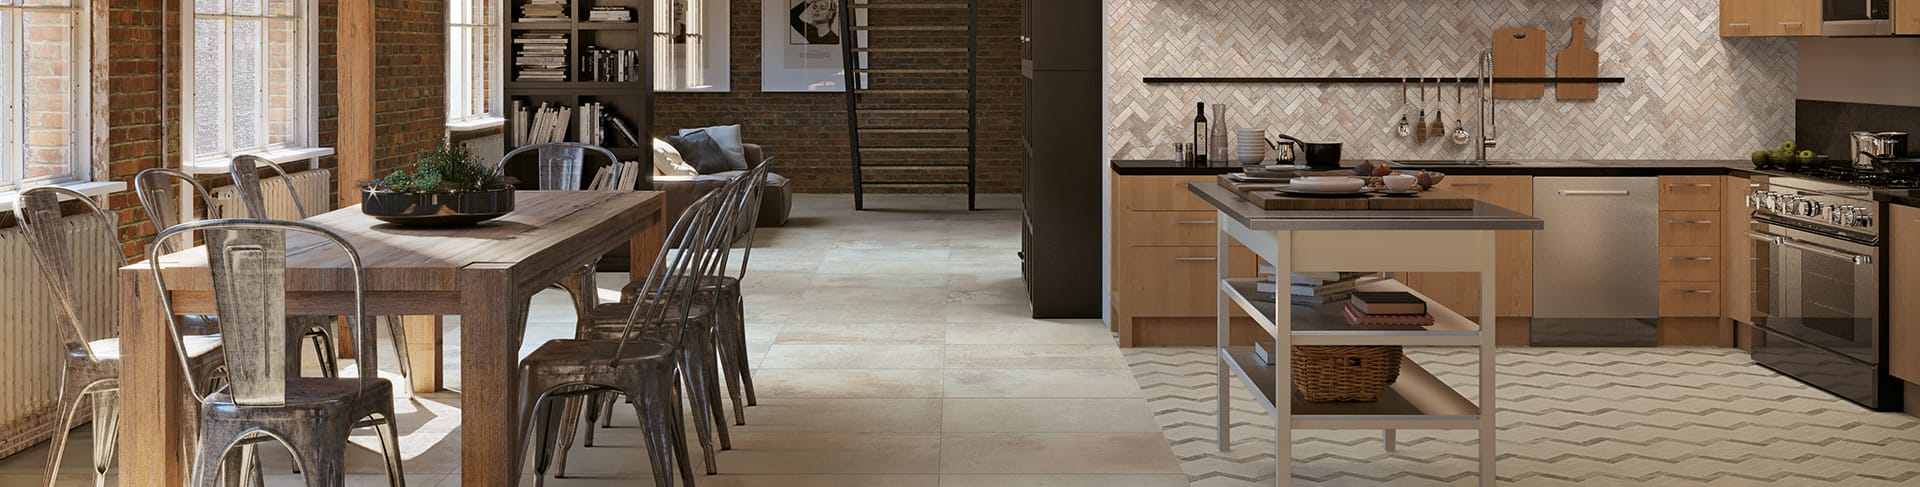 Beautiful porcelain tile grocery store with a cement look from the Atlas Concorde USA Rift Collection